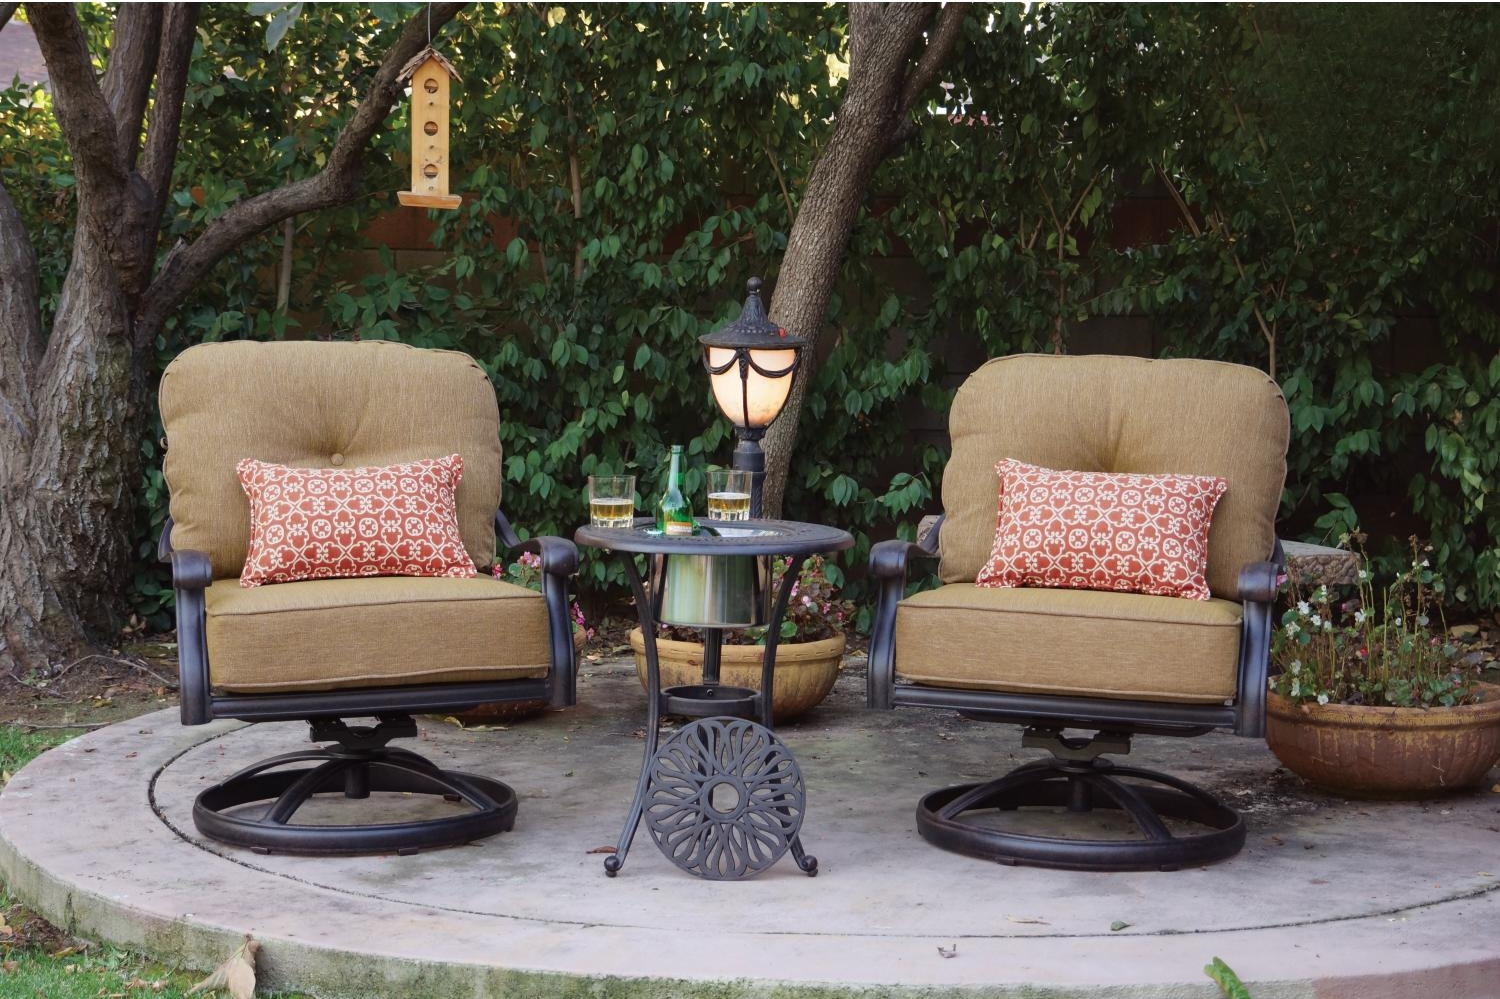 Patio Furniture Cast Aluminum Deep Seating Rocker Set Swivel Club Chair 3pc Lisse